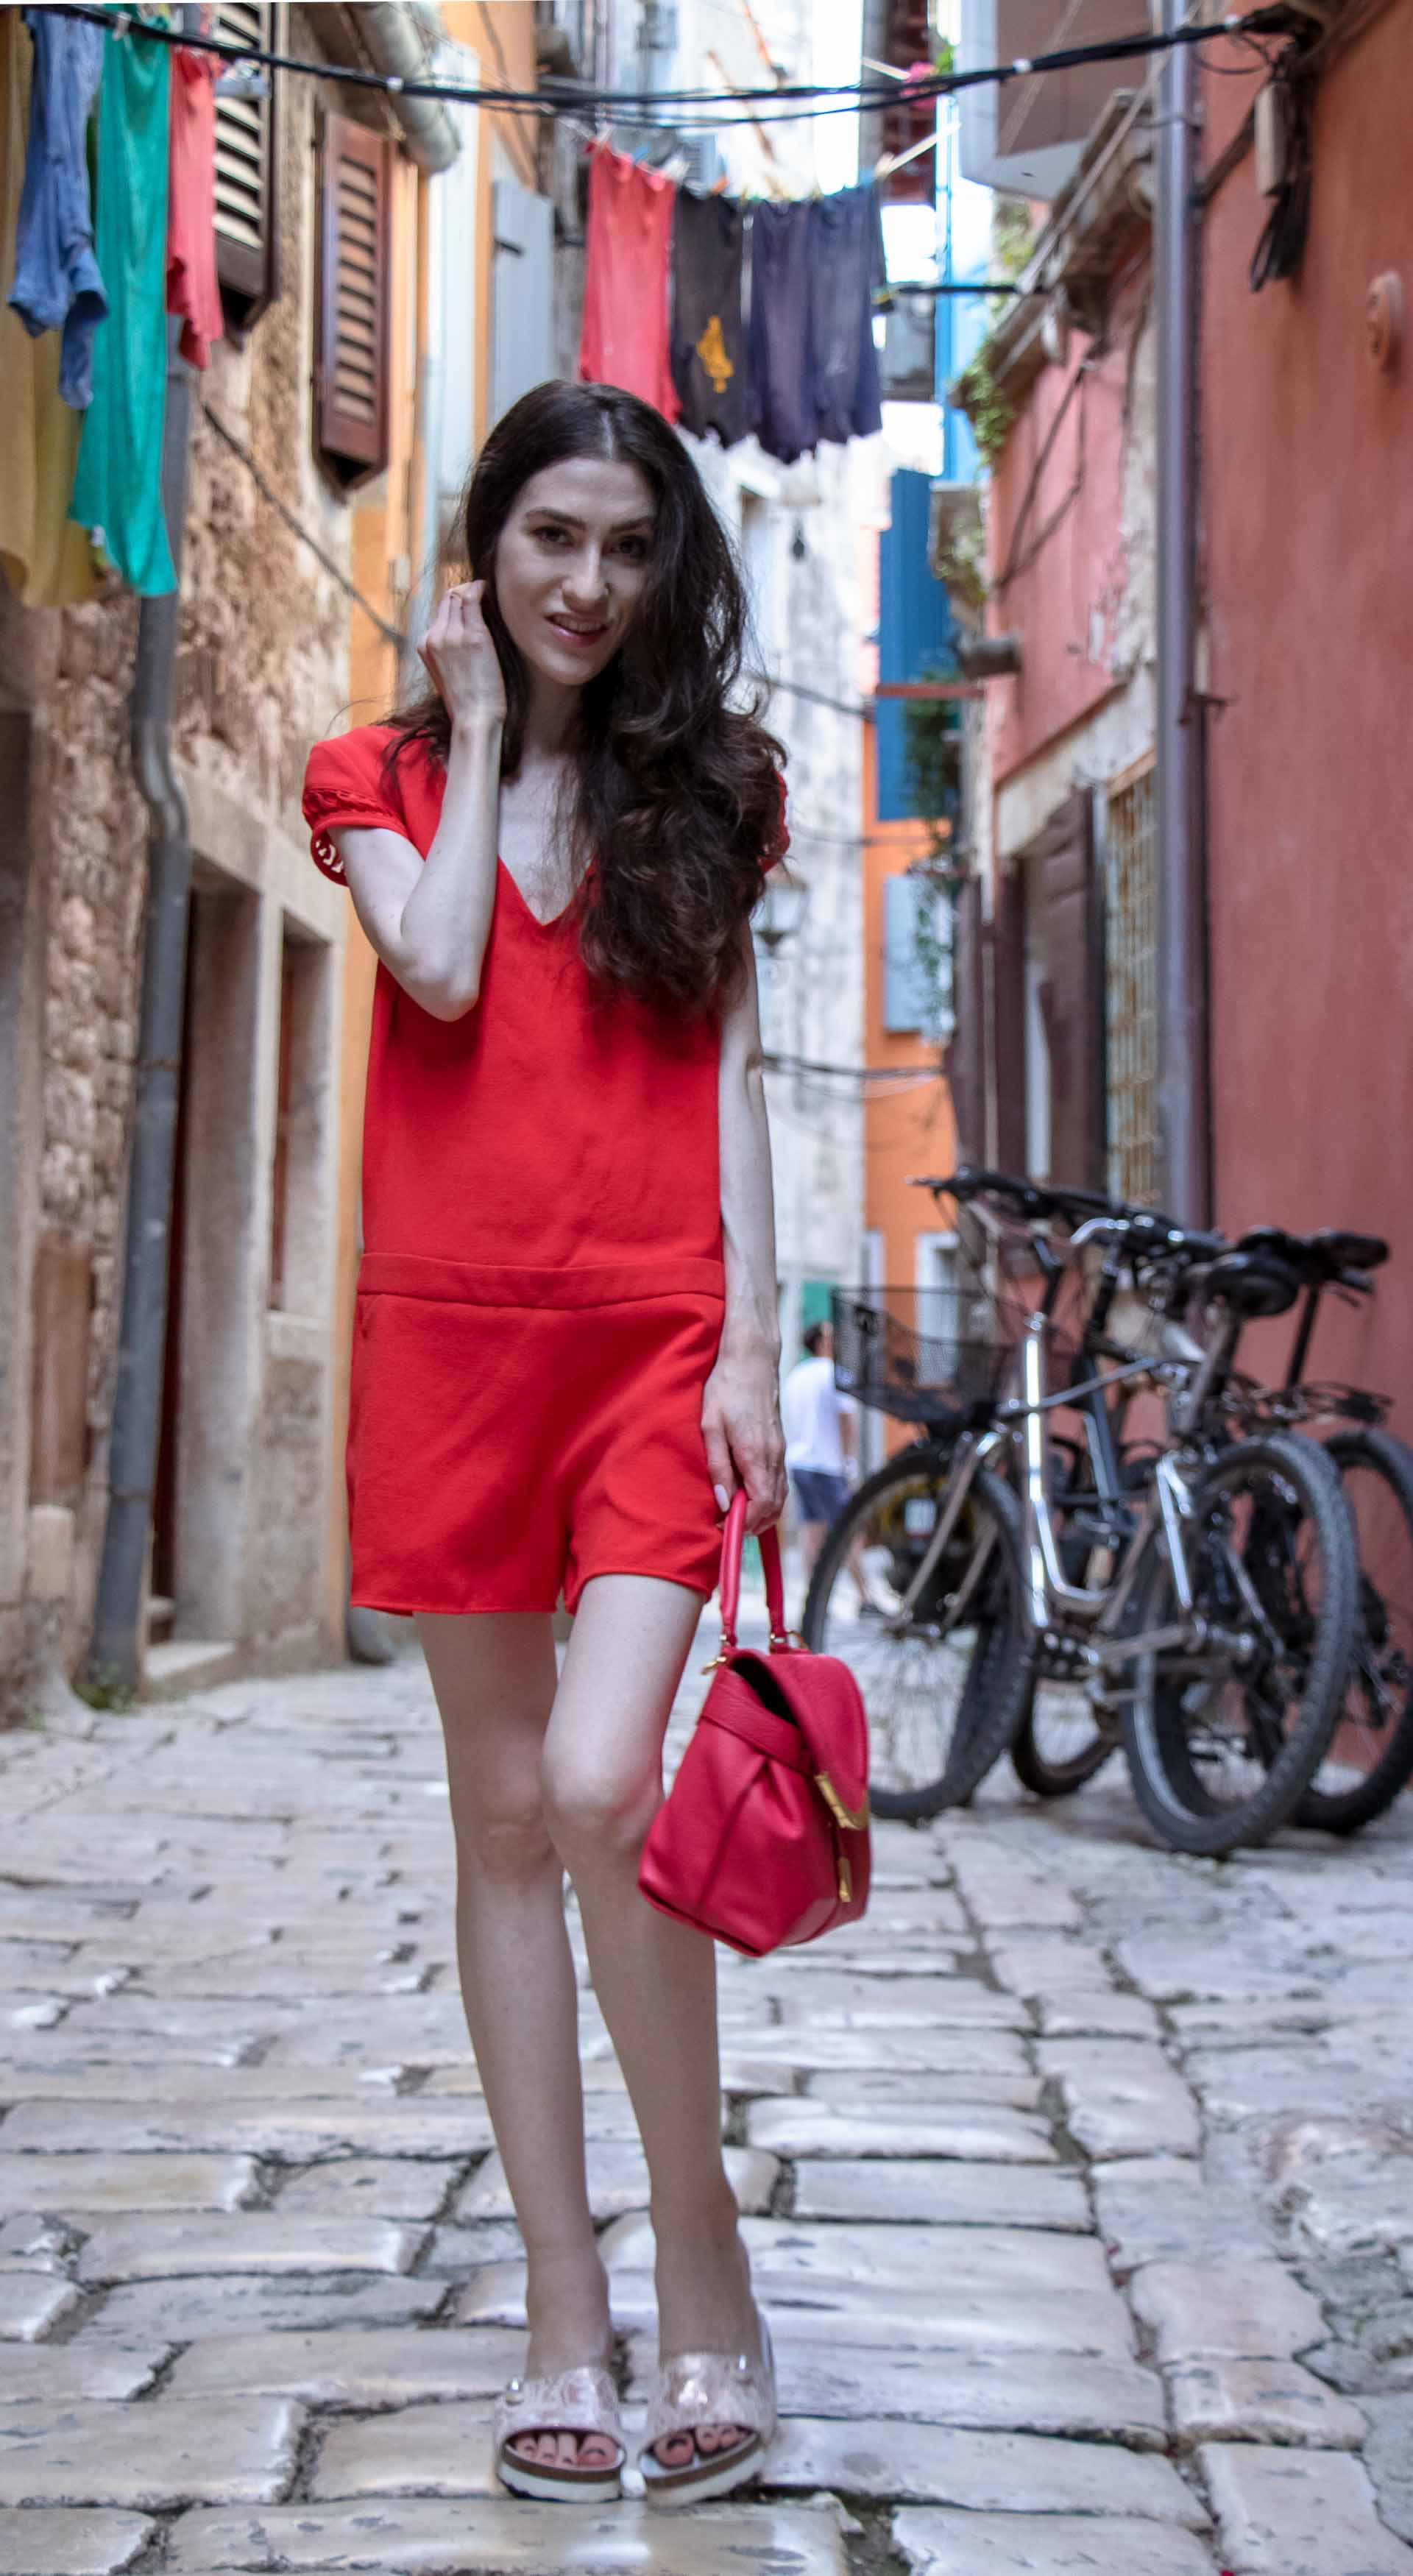 Fashion Blogger Veronika Lipar of Brunette from Wall Street wearing open back chic red romper, crystal-embellished lace luxe pool slides, pink top handle bag while standing on the narrow picturesque street in Rovinj